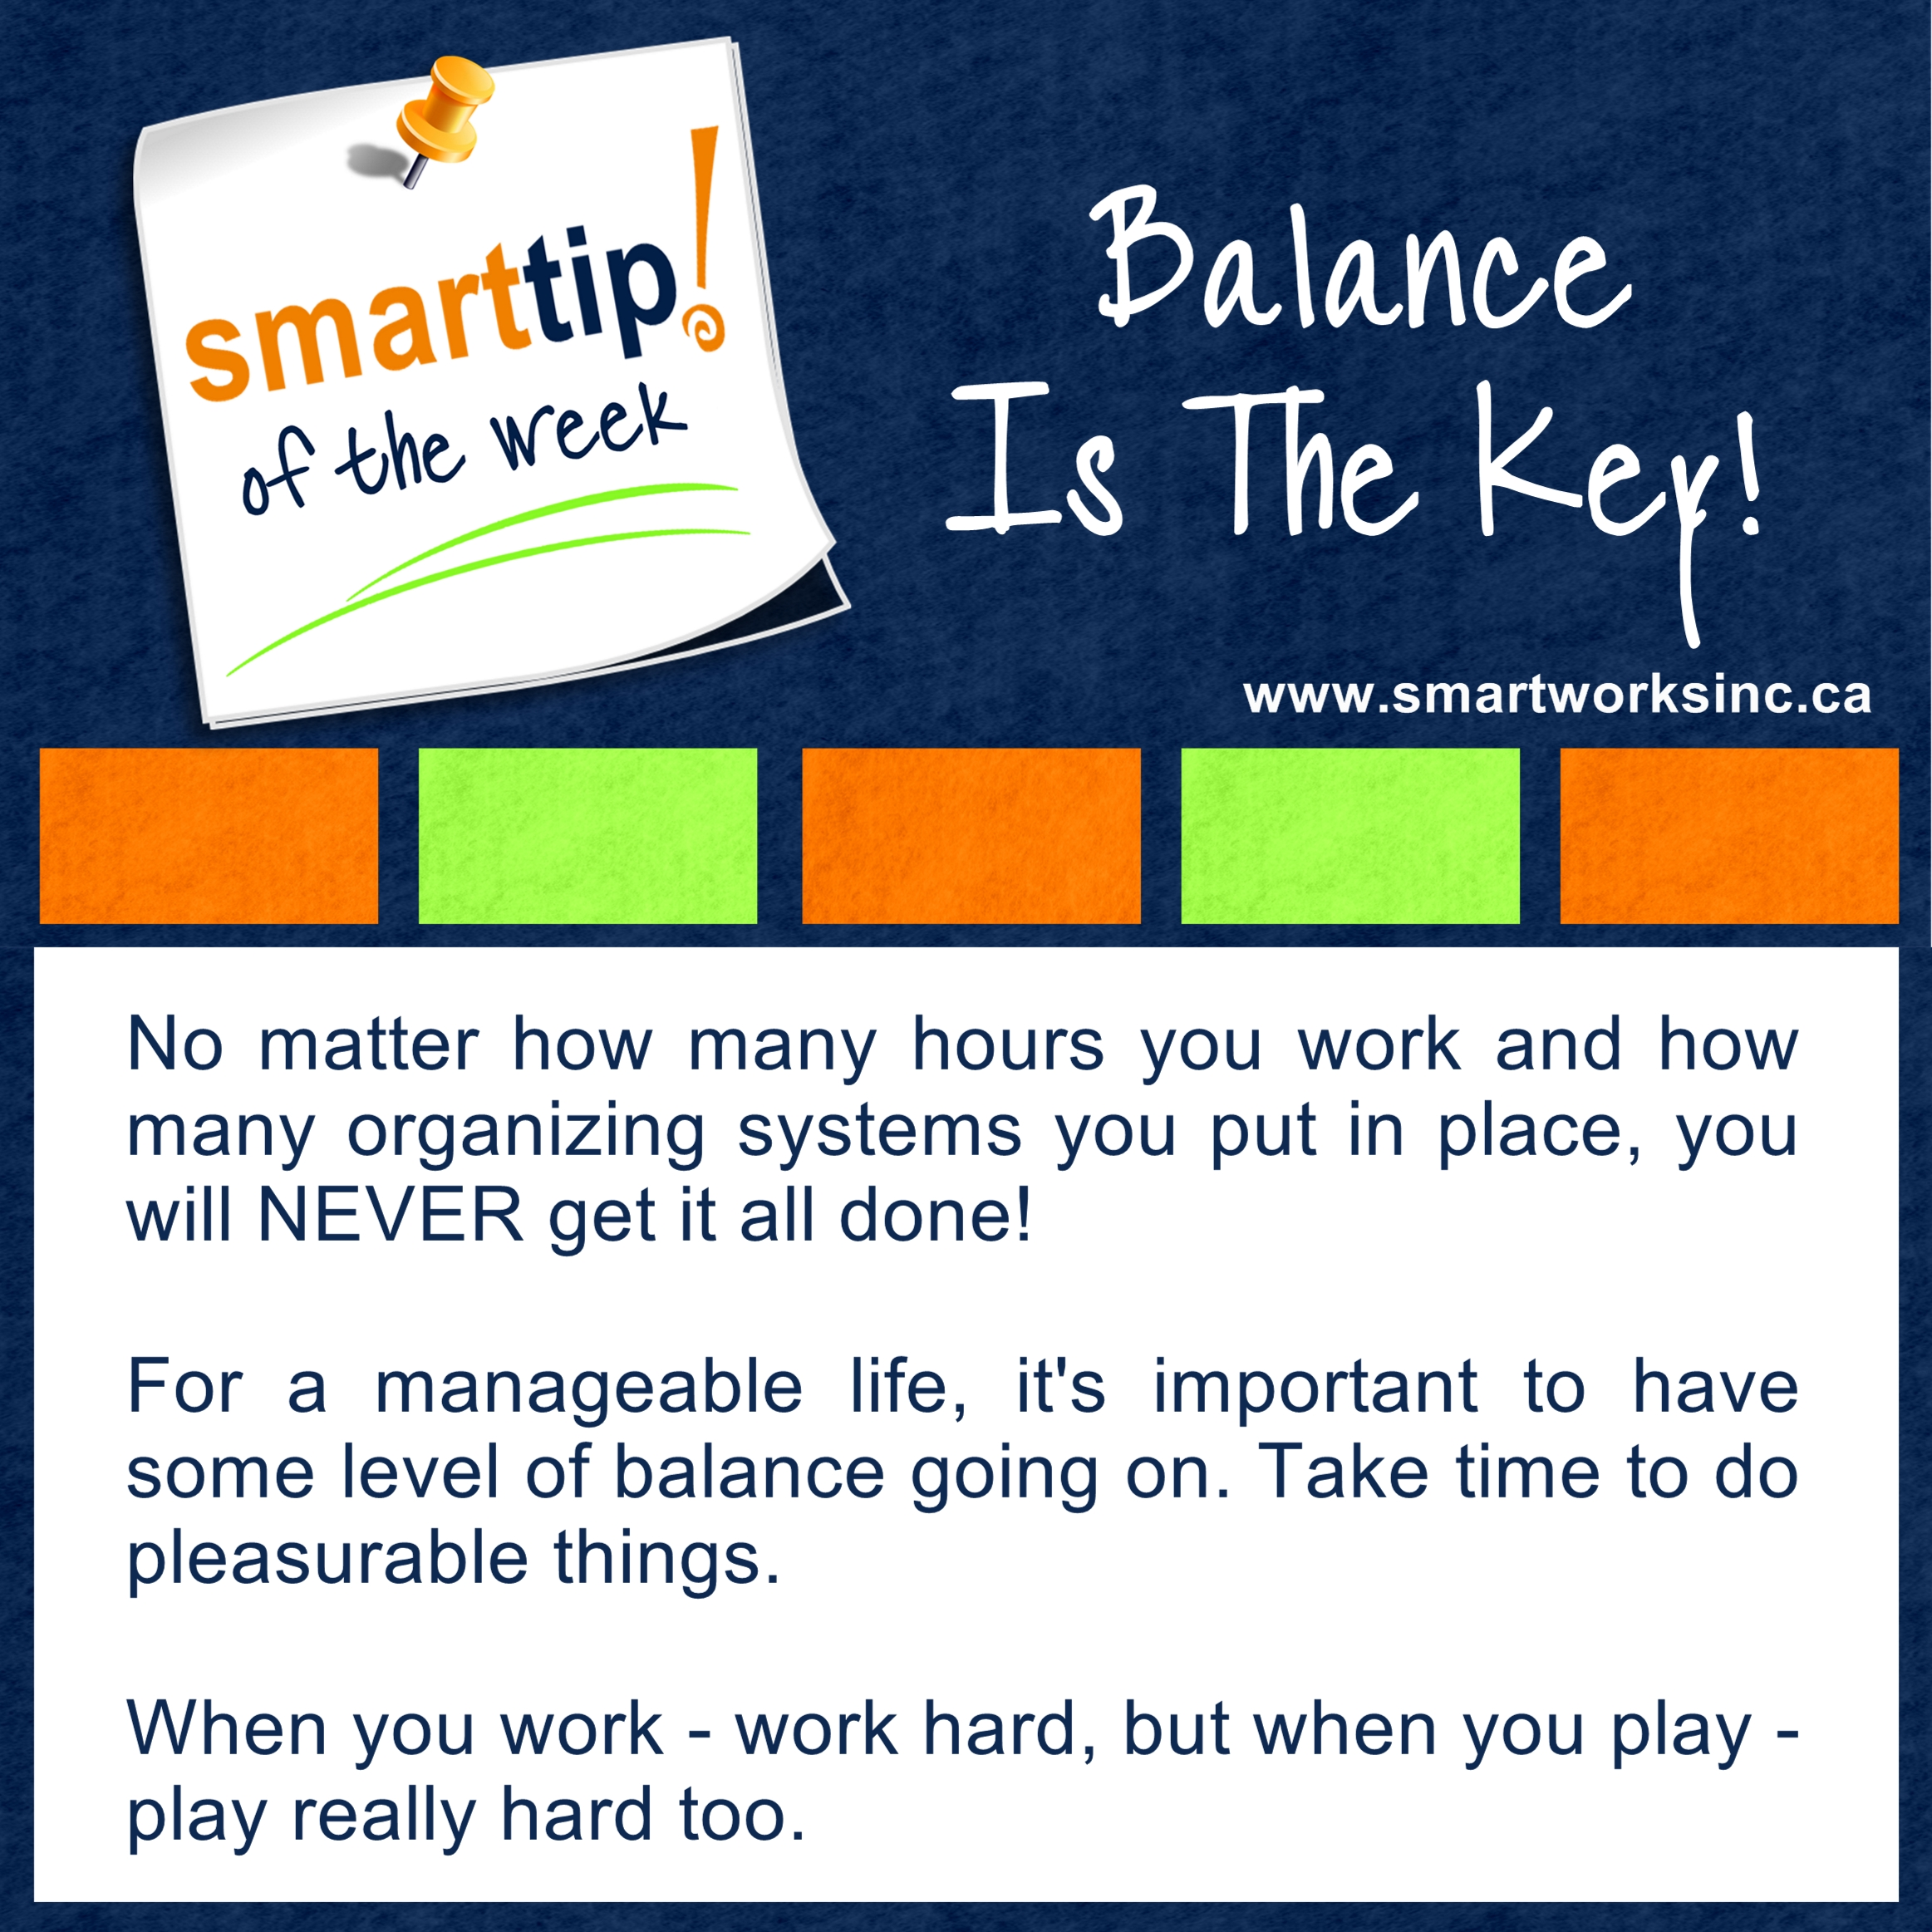 13-balance-is-the-key